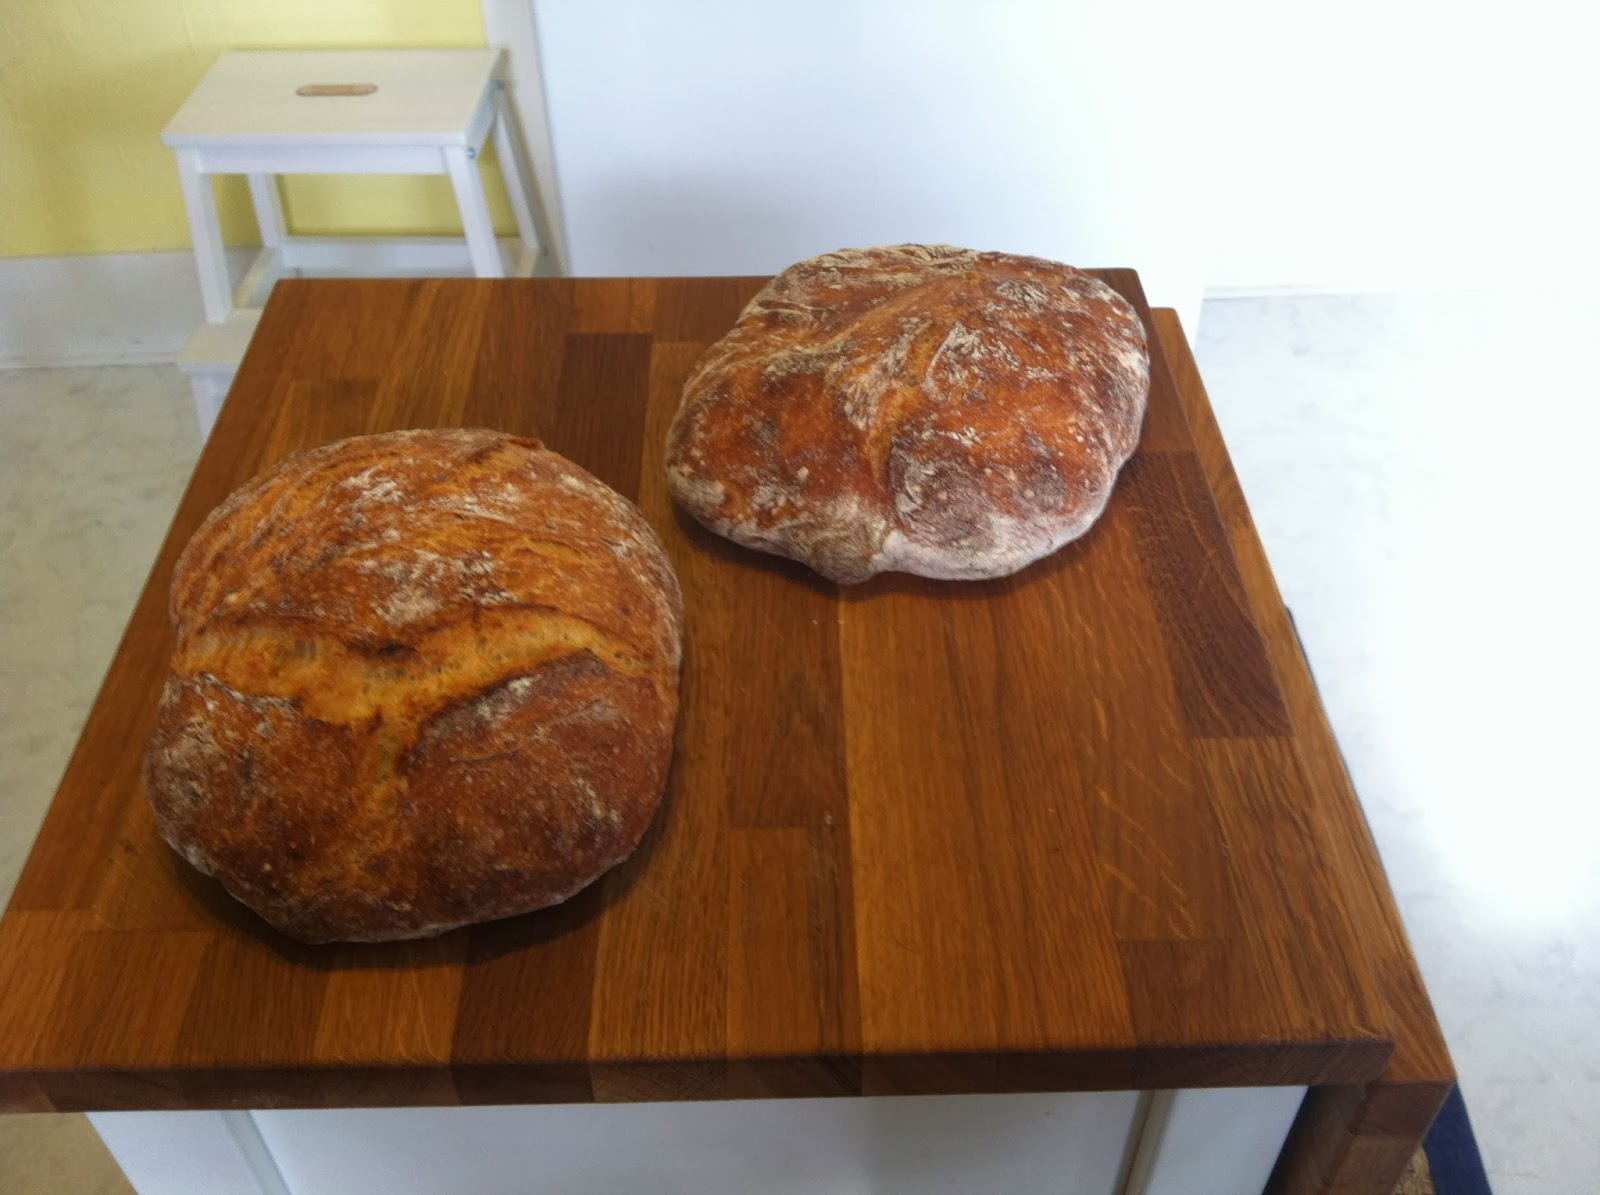 Note how the loaf on the right hasn't risen nearly as much as the one on the left